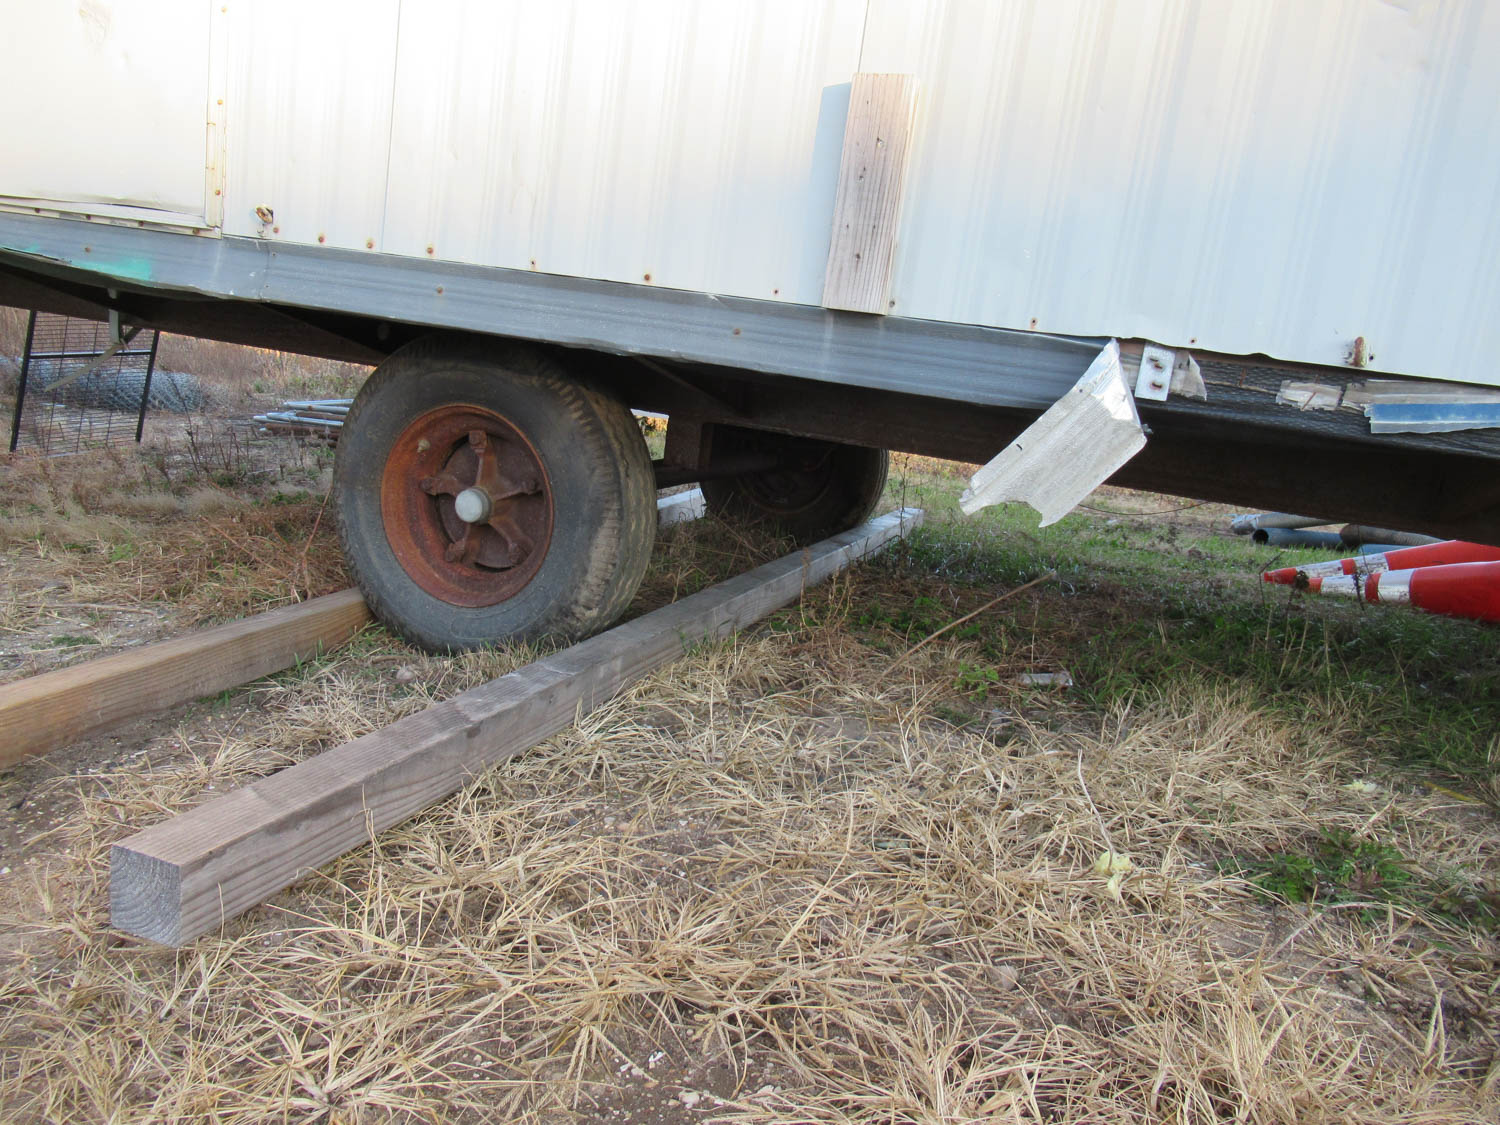 Lot 54 - APPROXIMATELY 28' OFFICE TRAILER [LOCATED @ MARINE PARKWAY BRIDGE - QUEENS SIDE]